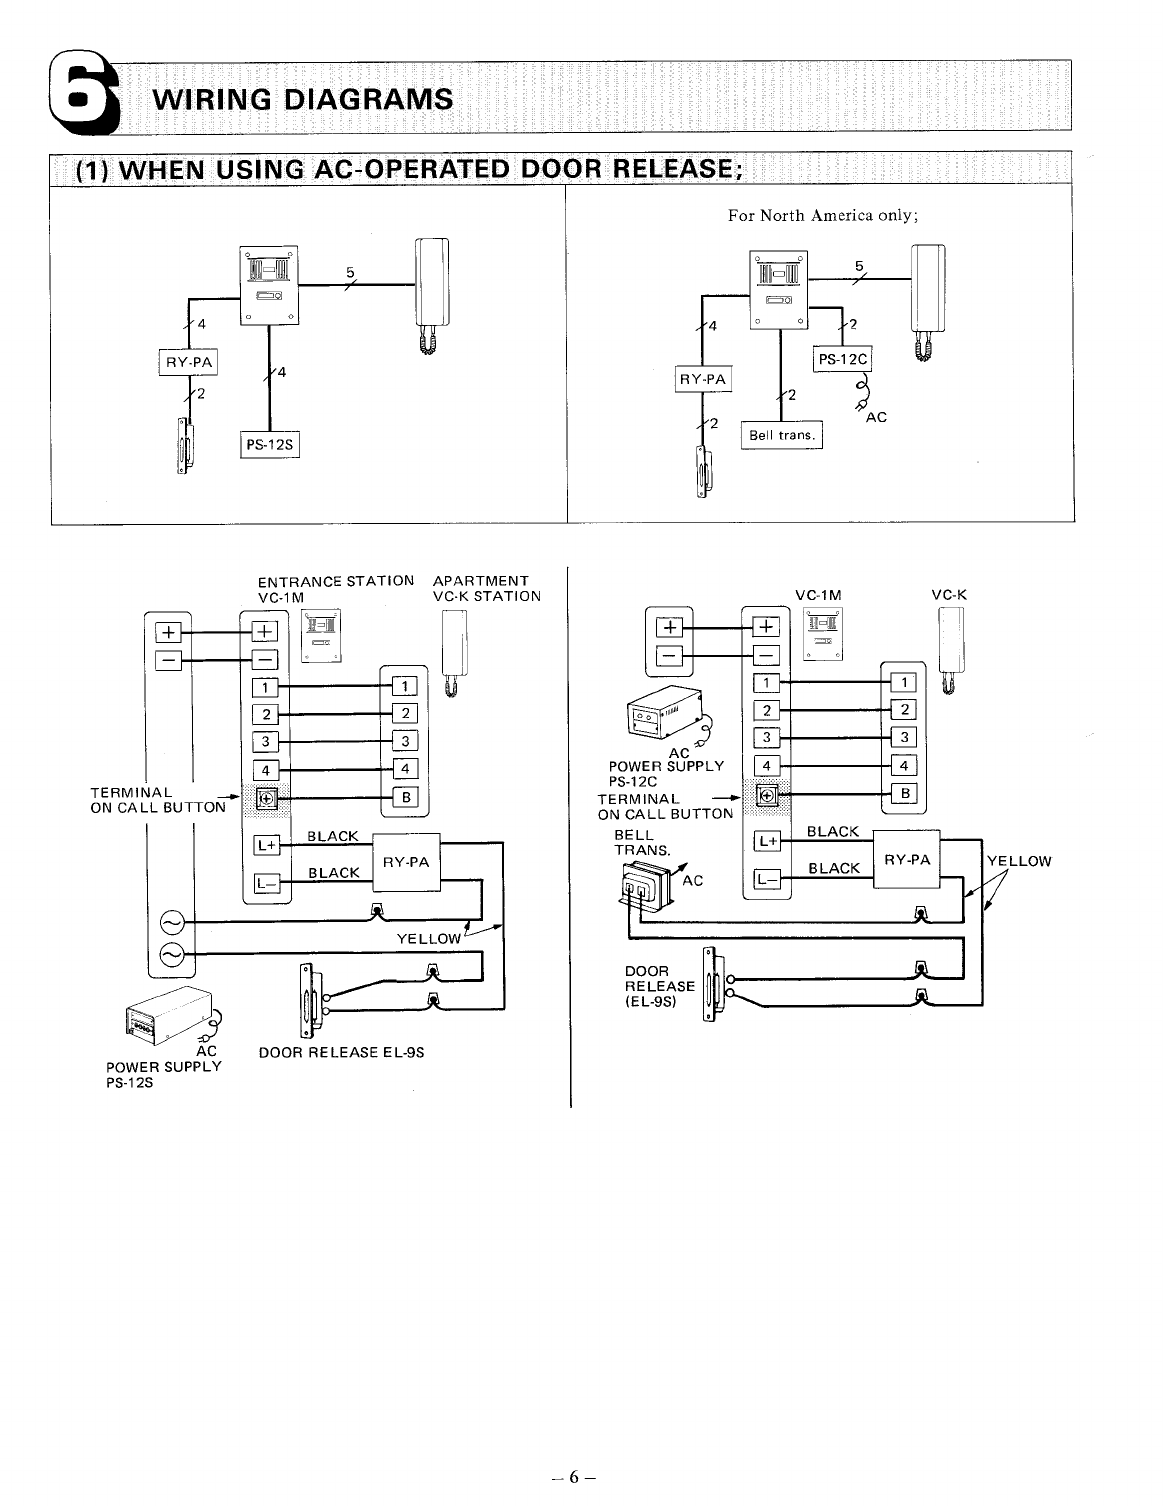 russound wiring diagram html with Aiphone Vc K Wiring Diagram on Select 3 4 Inch Motorized Water Valve also Control4 Inter  System Wiring Diagram further Small Engine Alternator Wiring moreover Speakercraft Ir Receiver Wiring Diagram further Sound System Wires.